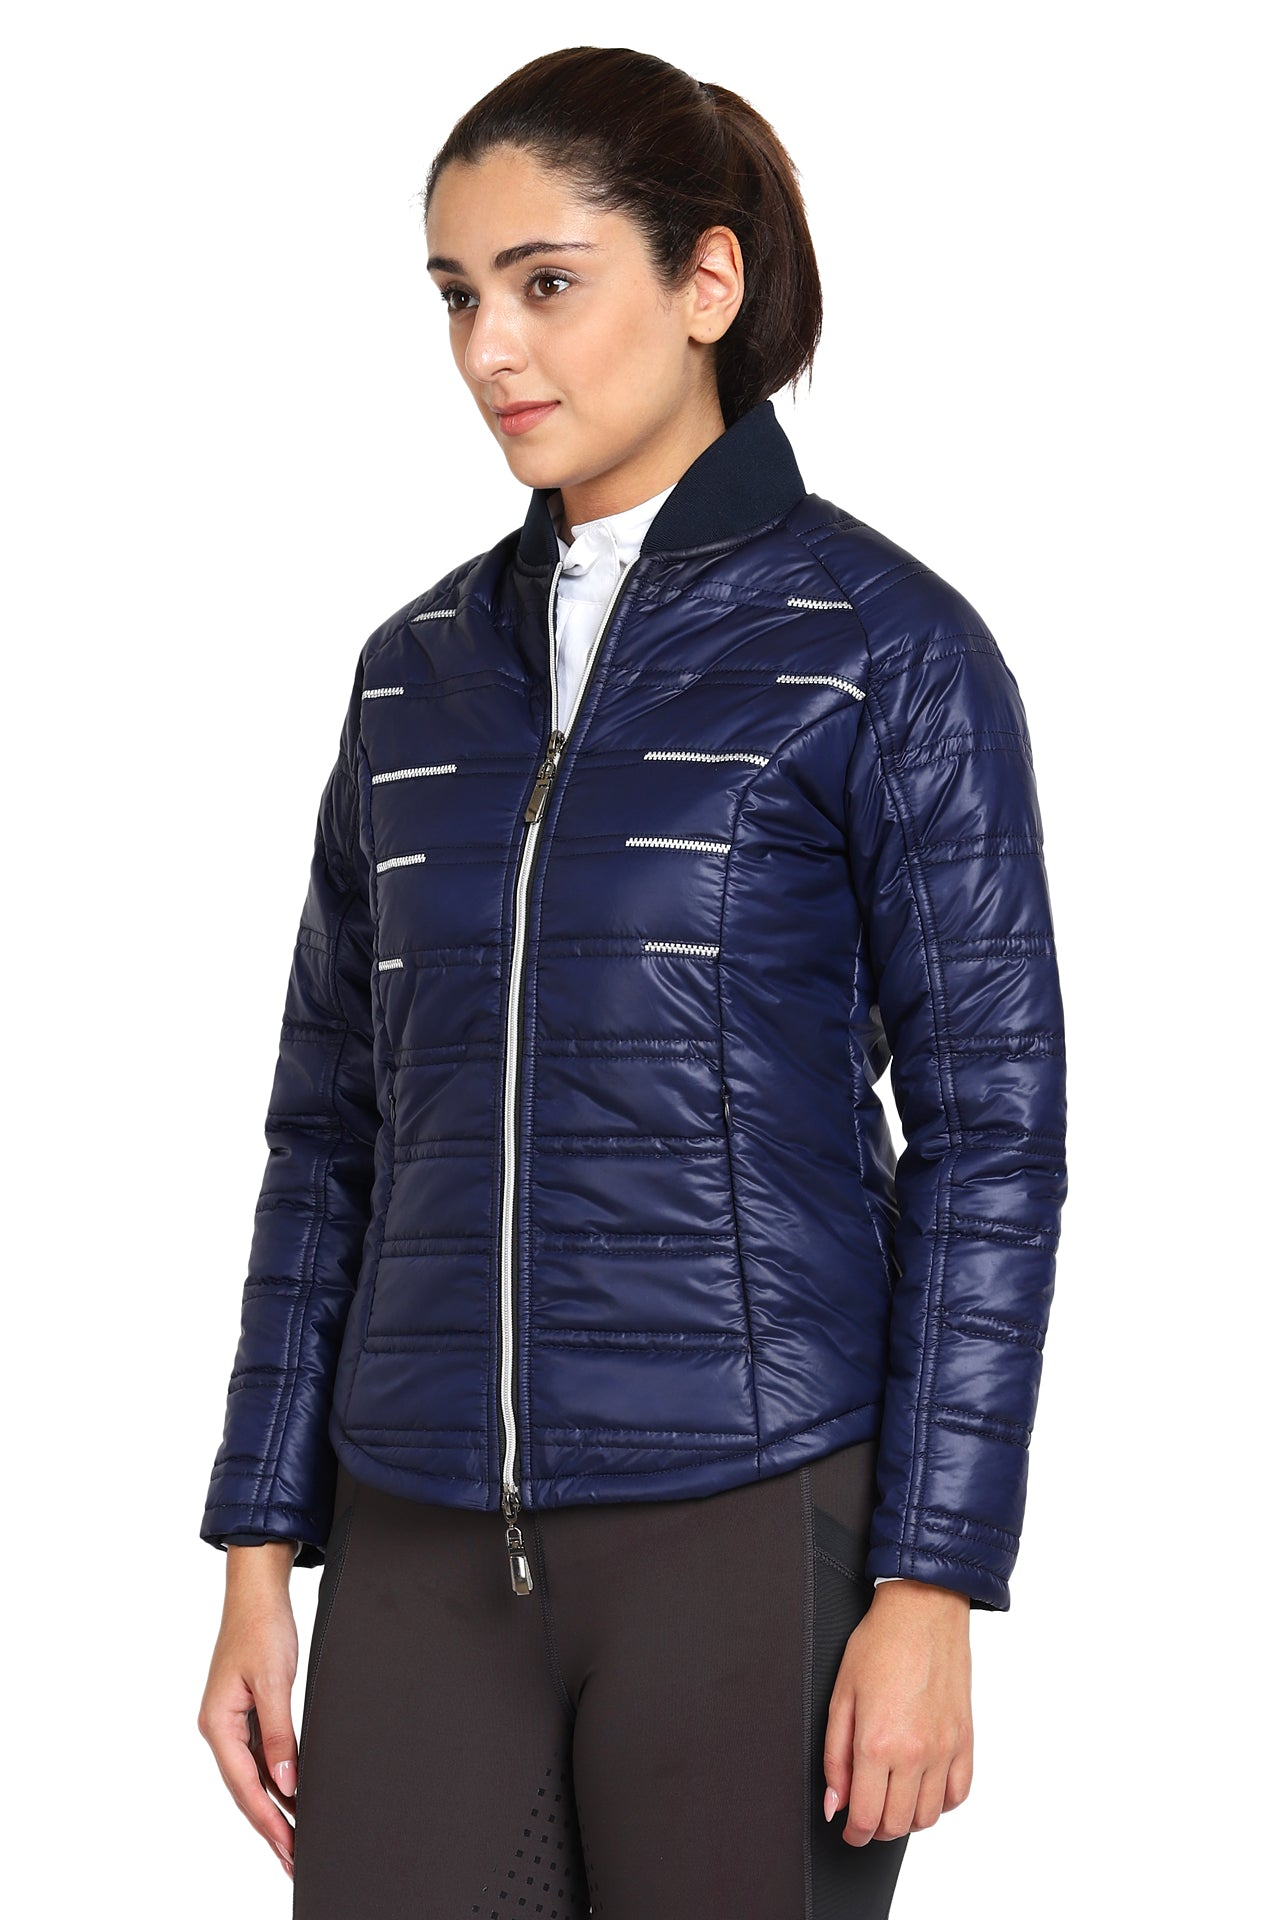 EQUINE COUTURE LADIES ALPINE PUFFER JACKET_5508